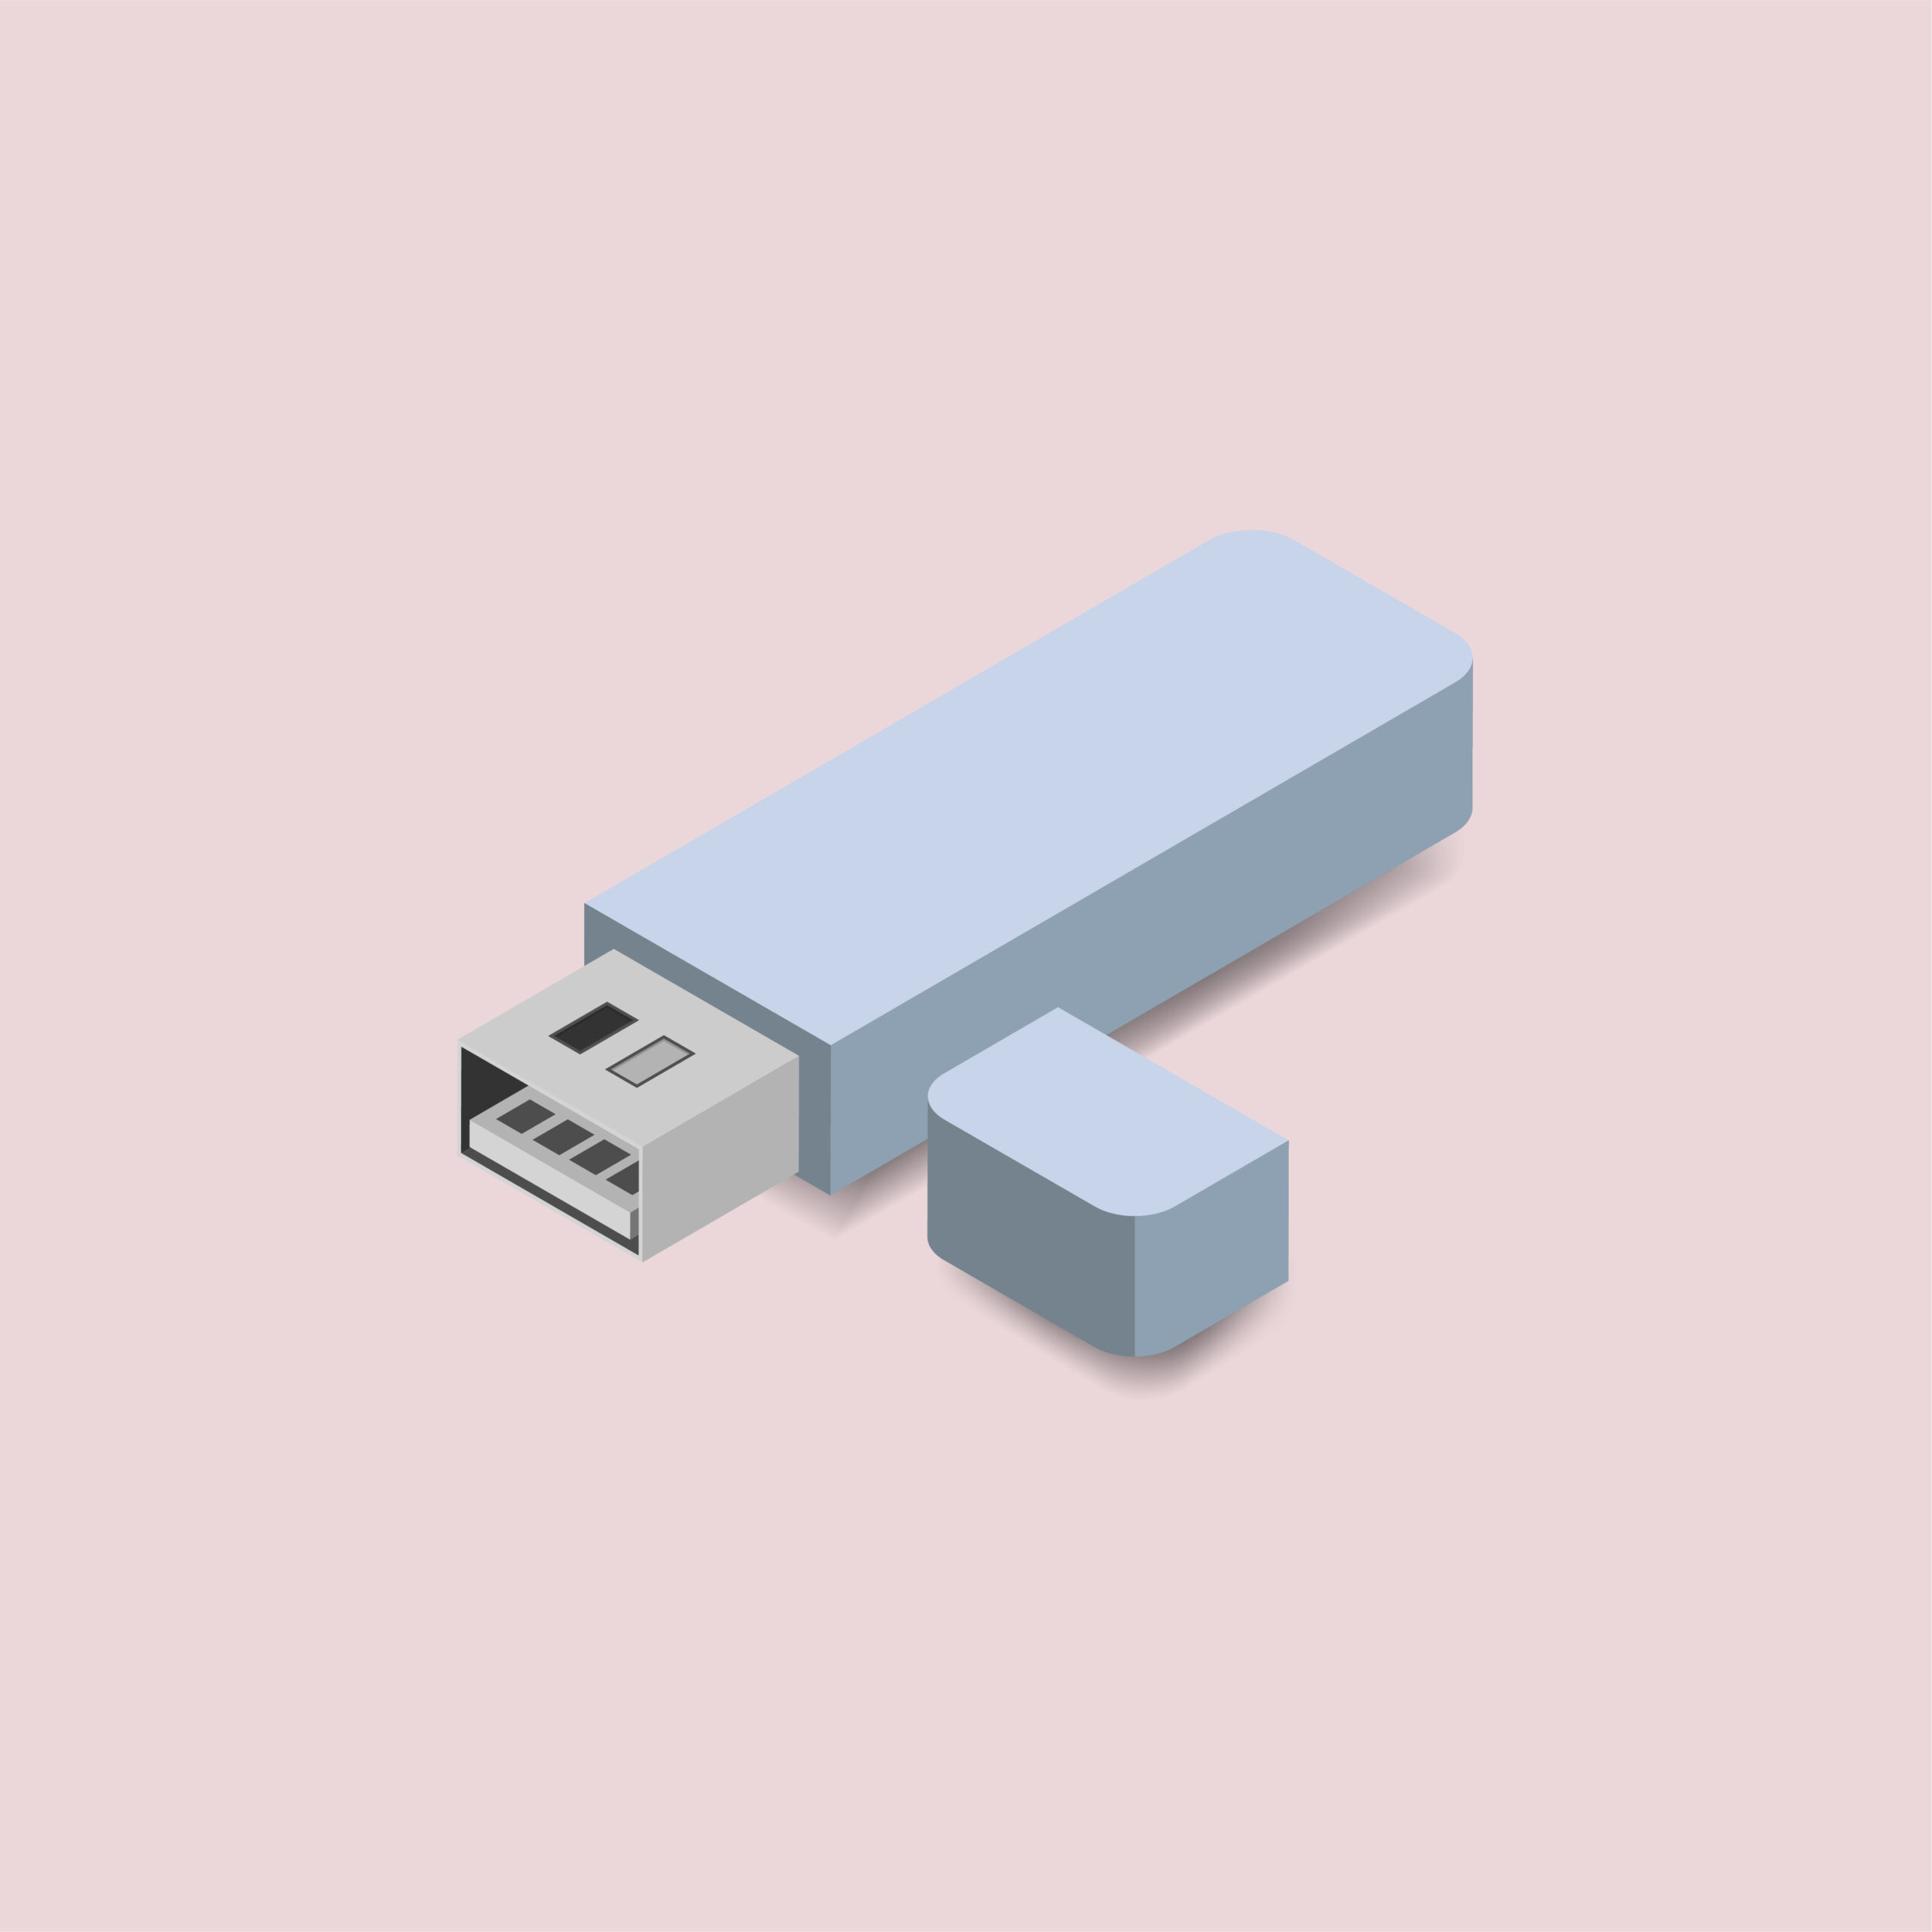 what is the purpose of a flash drive